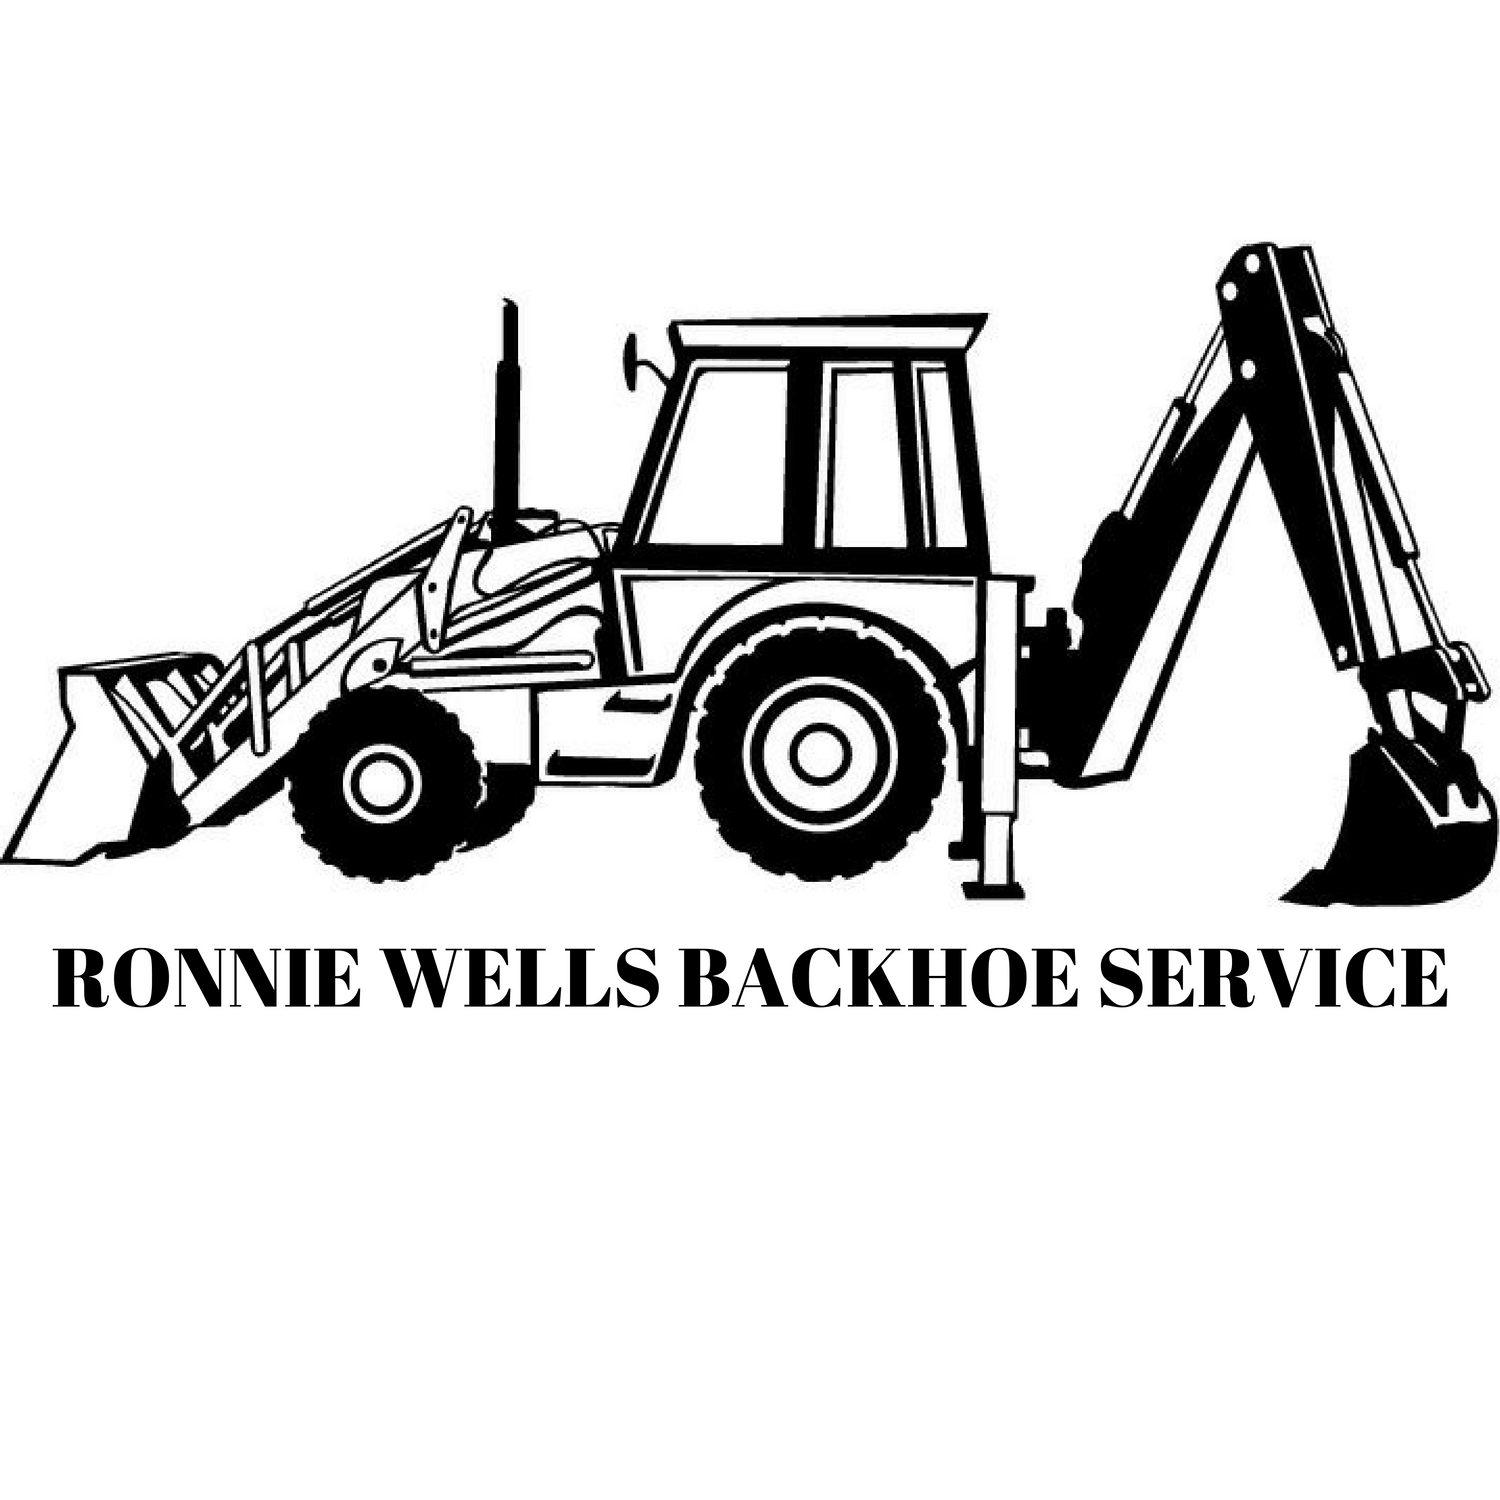 Ronnie Wells Backhoe Service